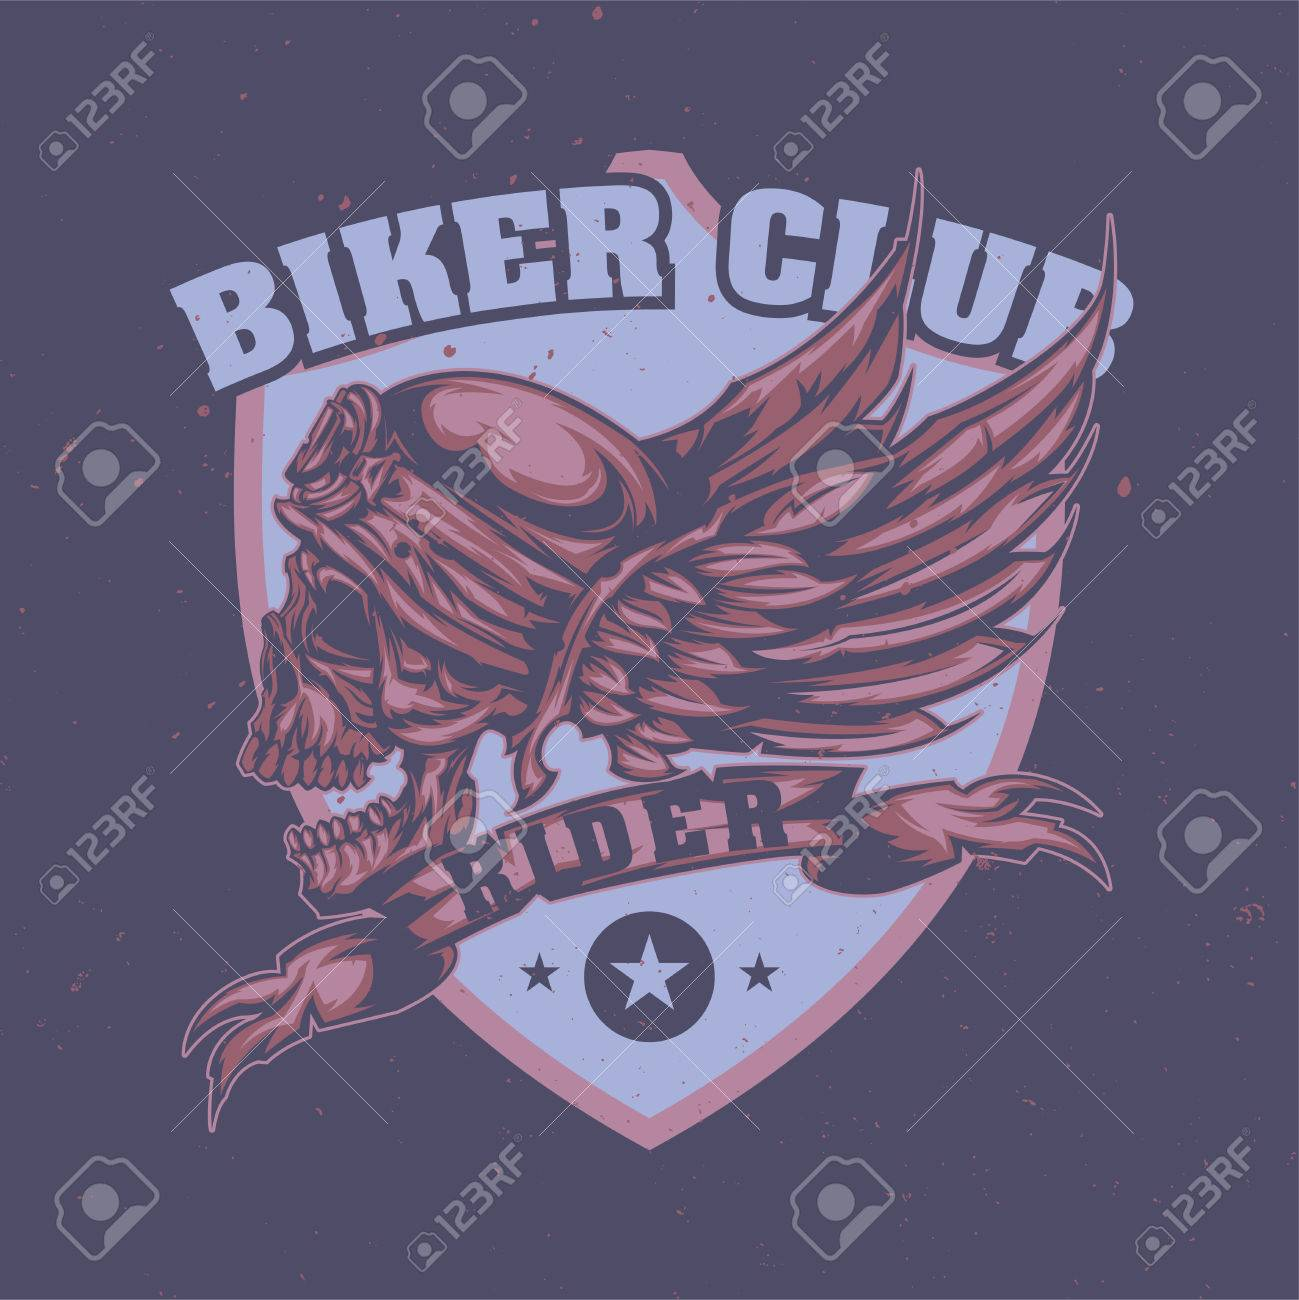 T-shirt or poster design with illustration of skull at helmet and wings on the background - 83333763